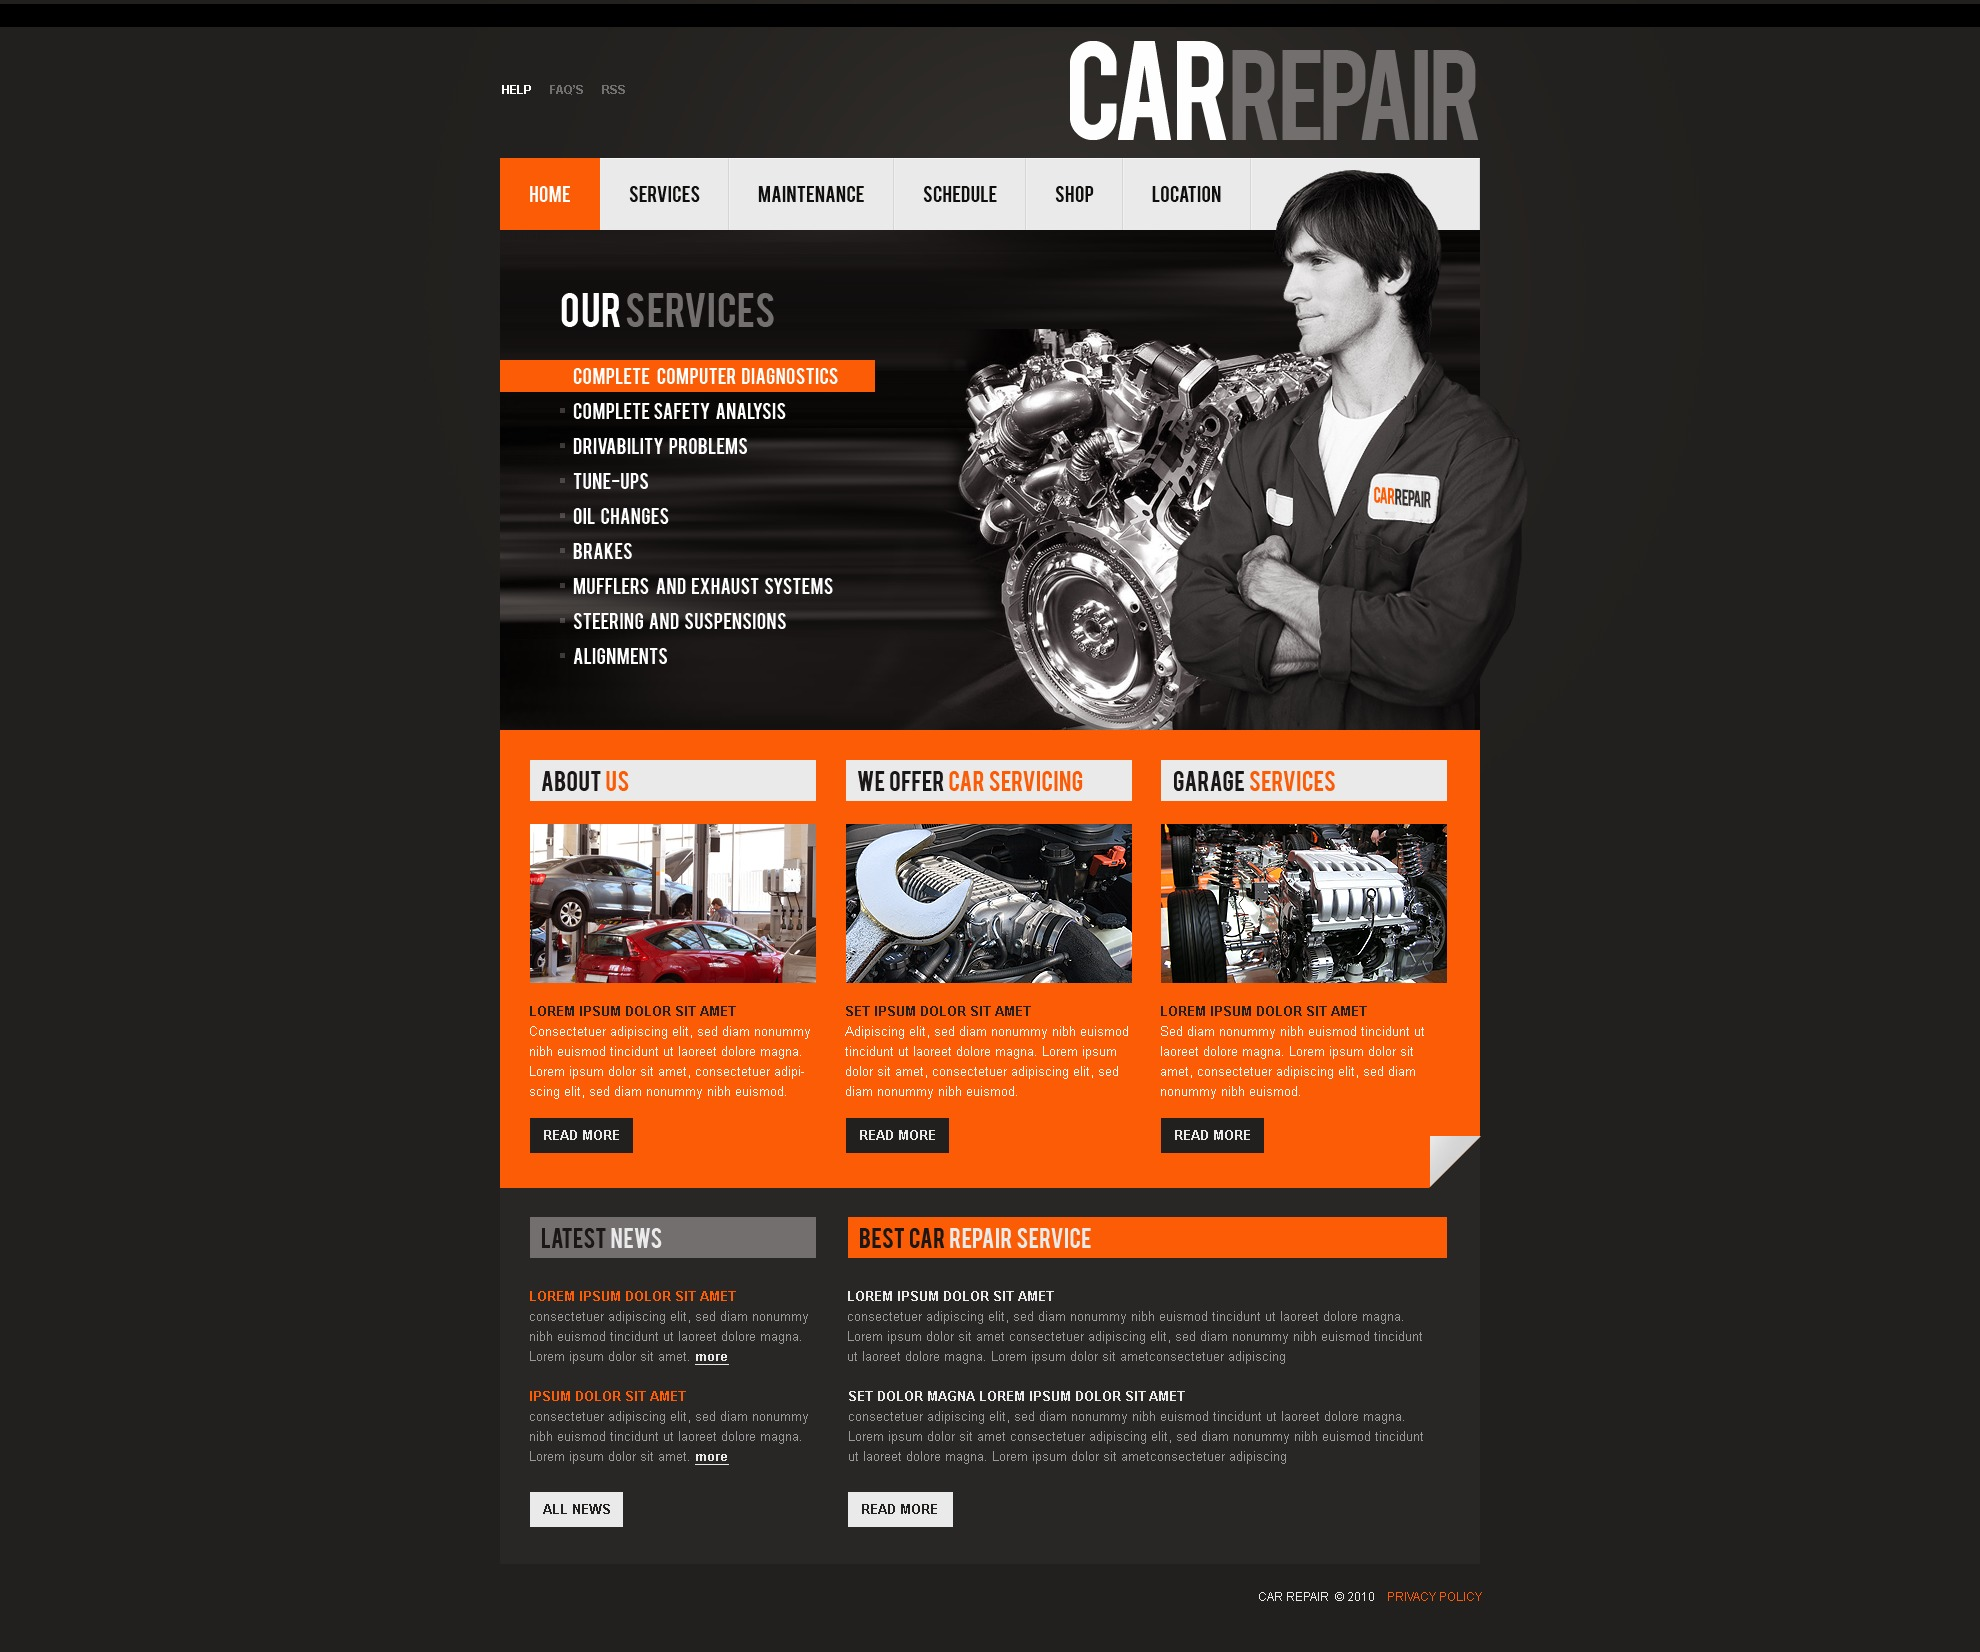 The Car Repair PSD Design 54303, one of the best PSD templates of its kind (cars, flash 8, wide), also known as car repair PSD template, recovery PSD template, repairs PSD template, automobile PSD template, auto PSD template, maintenance PSD template, service care PSD template, advice PSD template, station and related with car repair, recovery, repairs, automobile, auto, maintenance, service care, advice, station, etc.